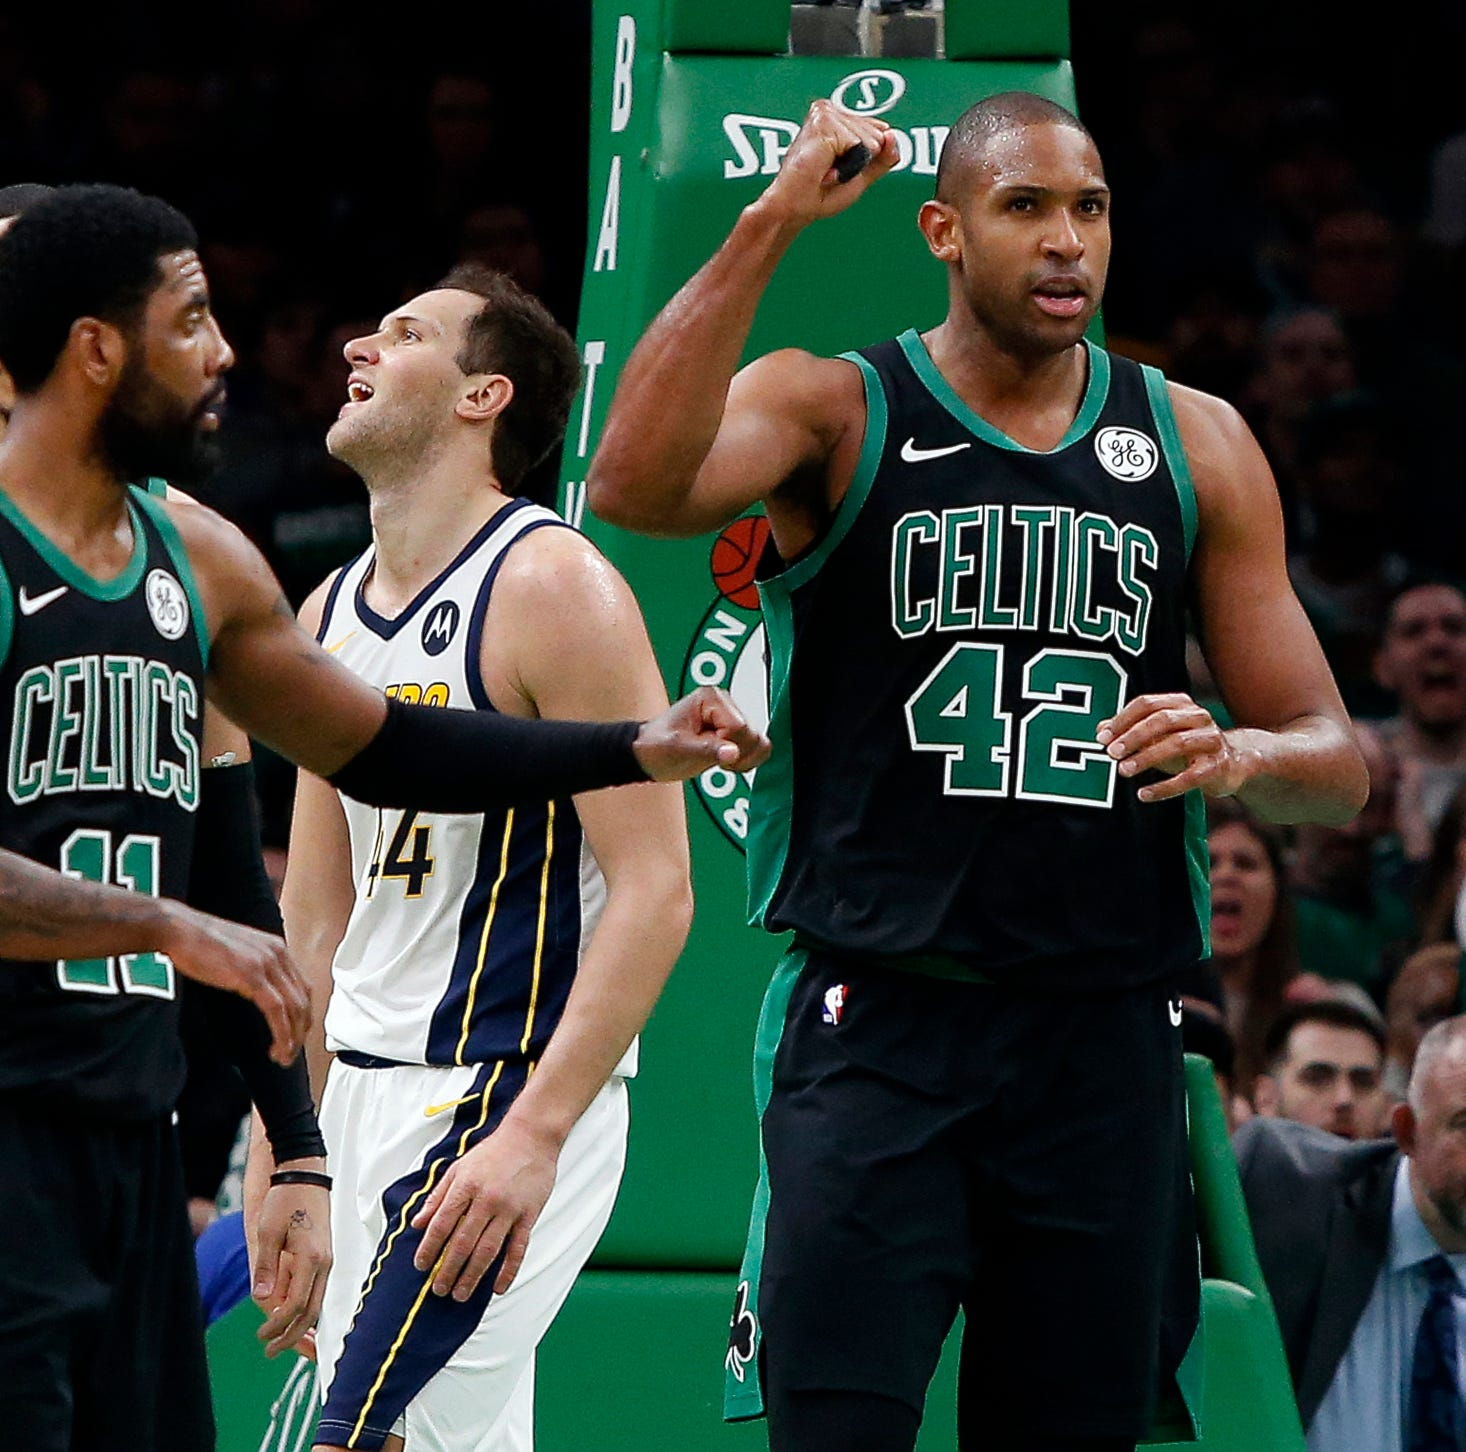 Doyel: Pacers ride historically bad third quarter to playoff loss to Celtics